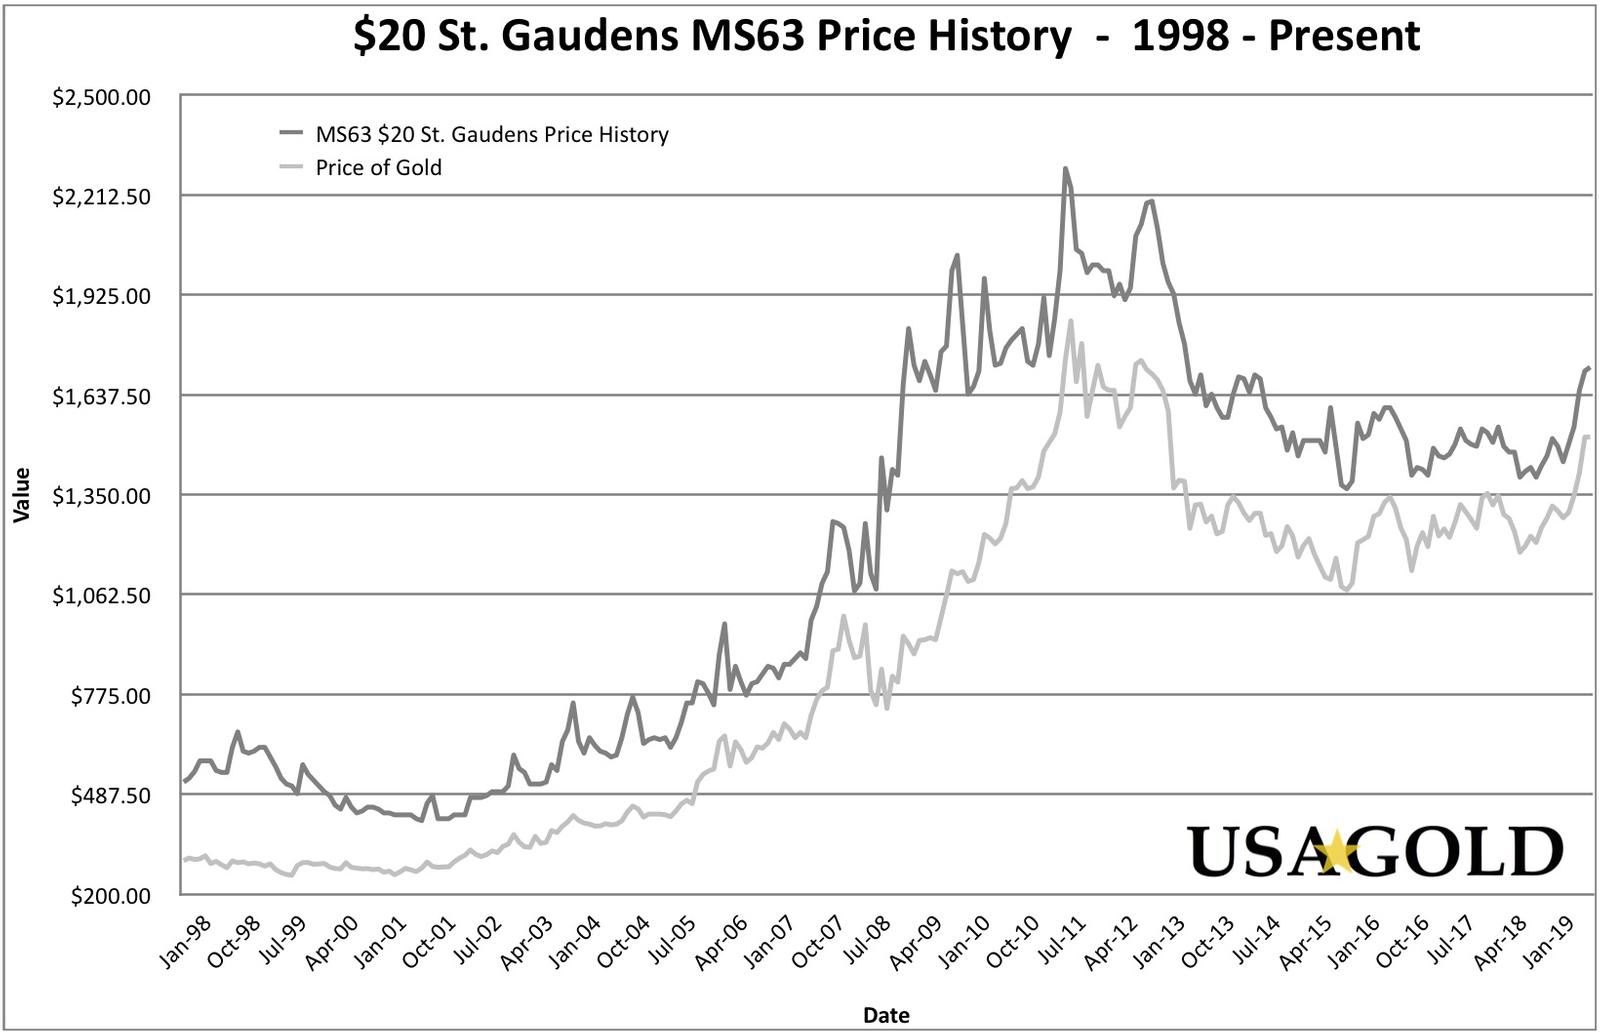 $20 St. Gaudens MS63 Price History Graph (20 Year), shown with the price of spot gold for the same period.